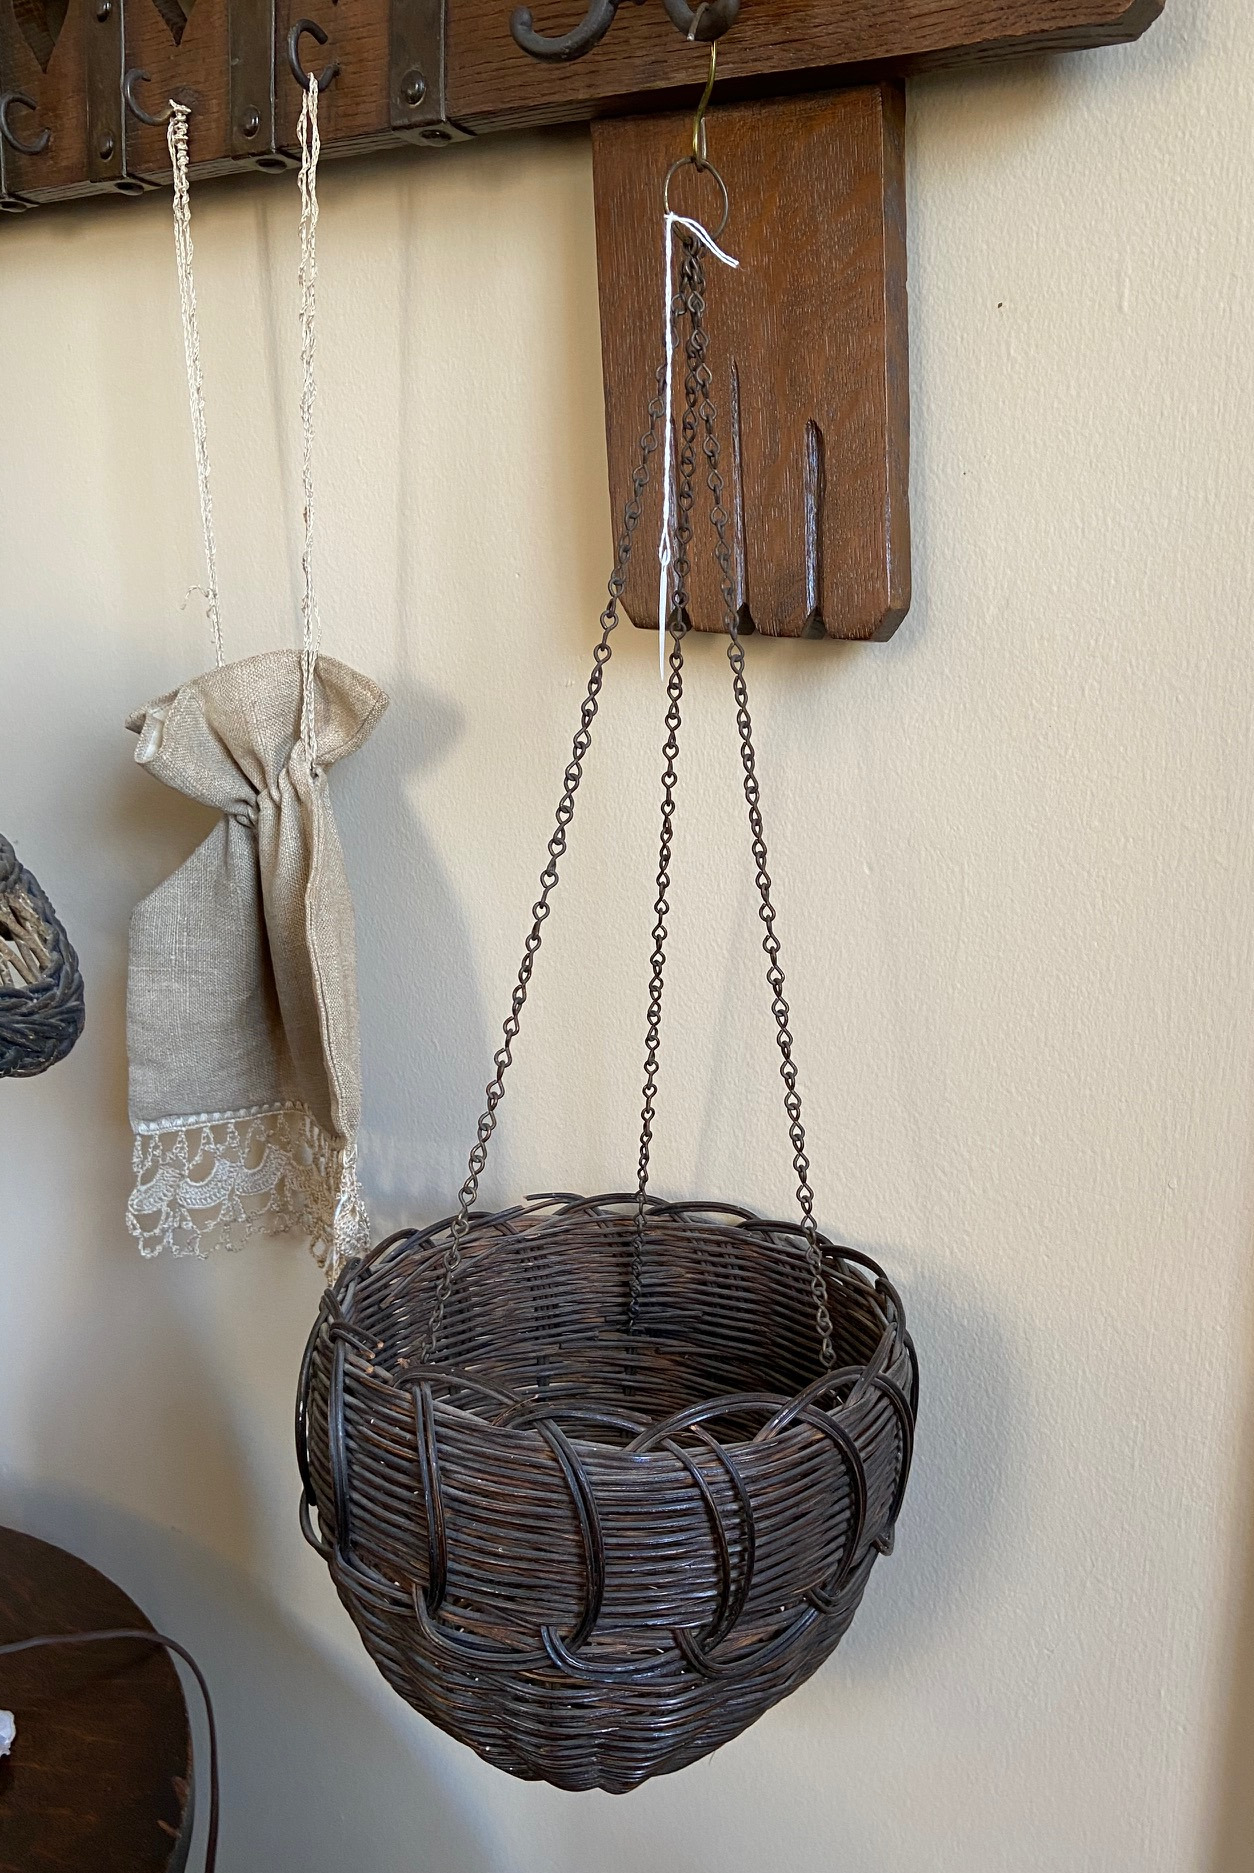 Wicker Hanging Basket and Ecru Bag